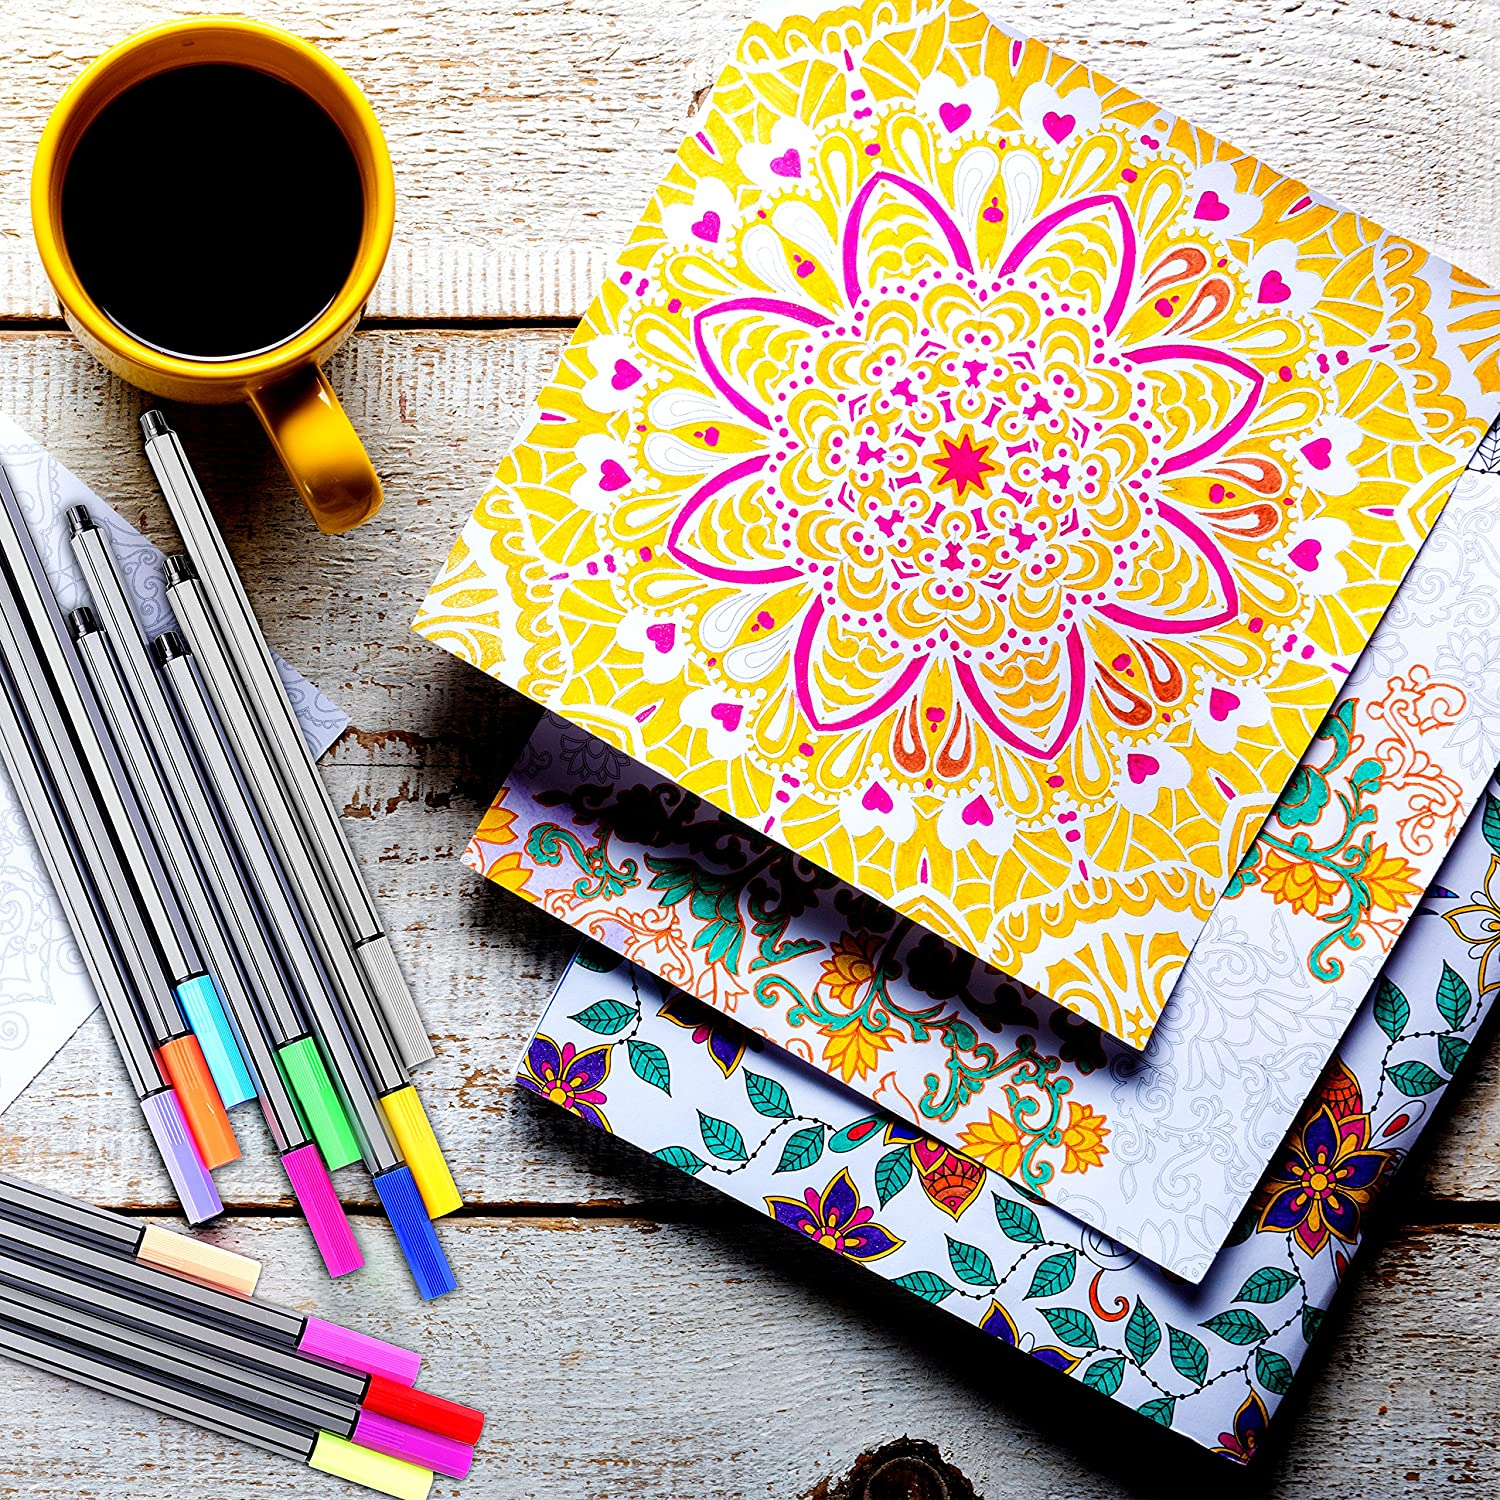 Coloring book for adults for pc - Fine Felt Tip Pens 30 Piece Colored Pen Art Set Ideal For Adult Coloring And Fine Drawing Amazon Co Uk Office Products